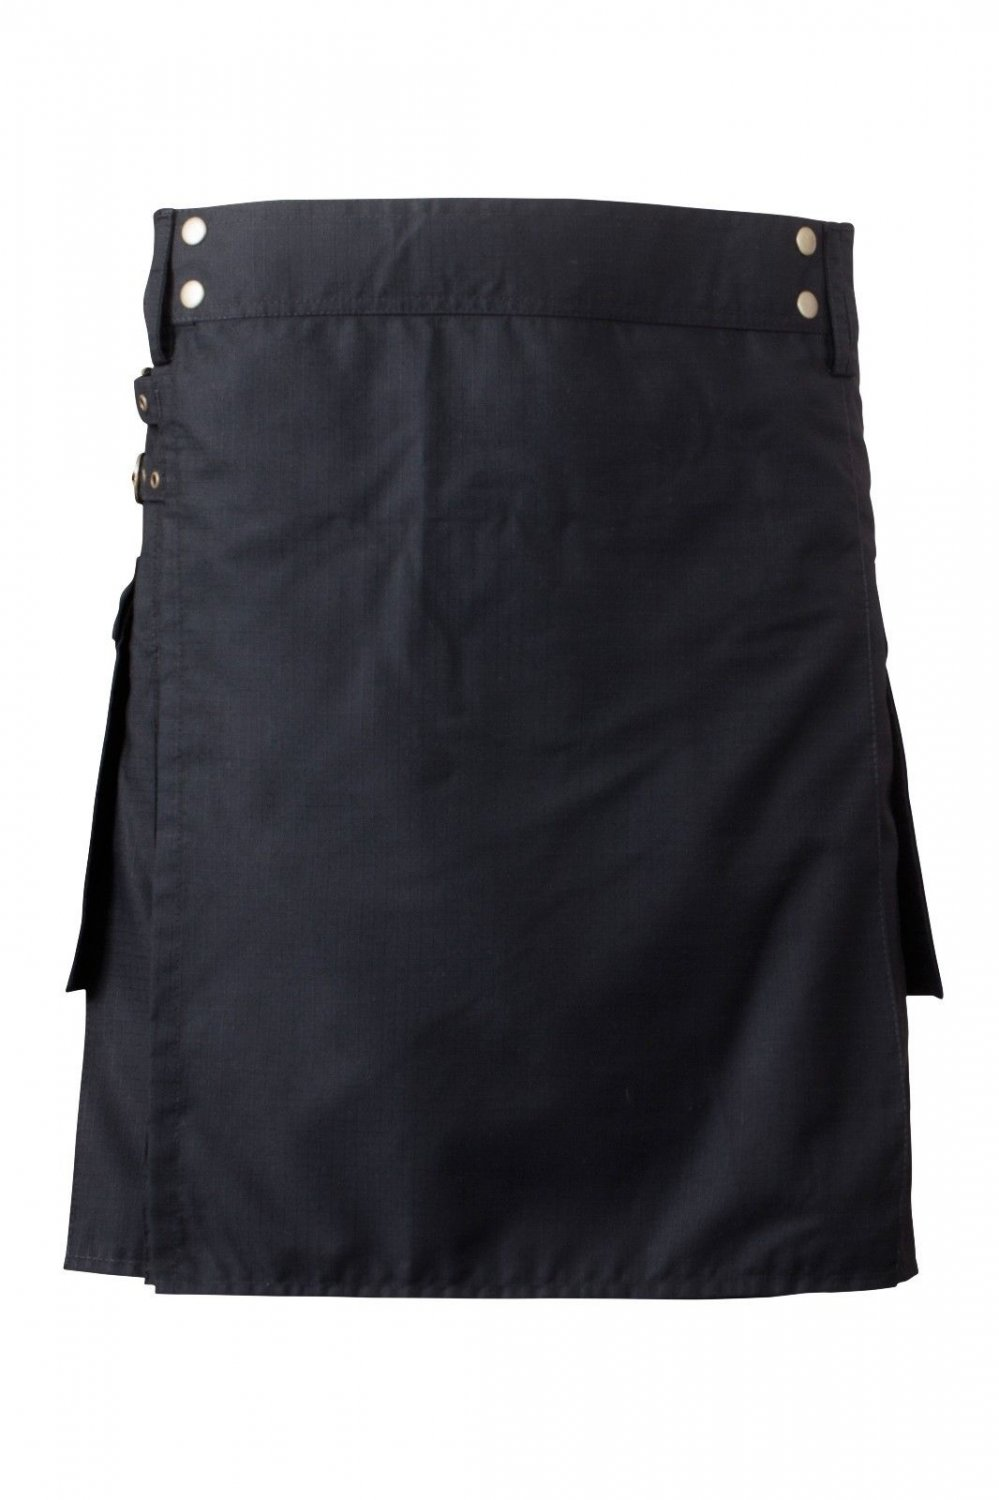 40 Waist Men's Scottish Low Price Brand New Black Cotton Utility Kilt, Fine Quality 100% Cotton